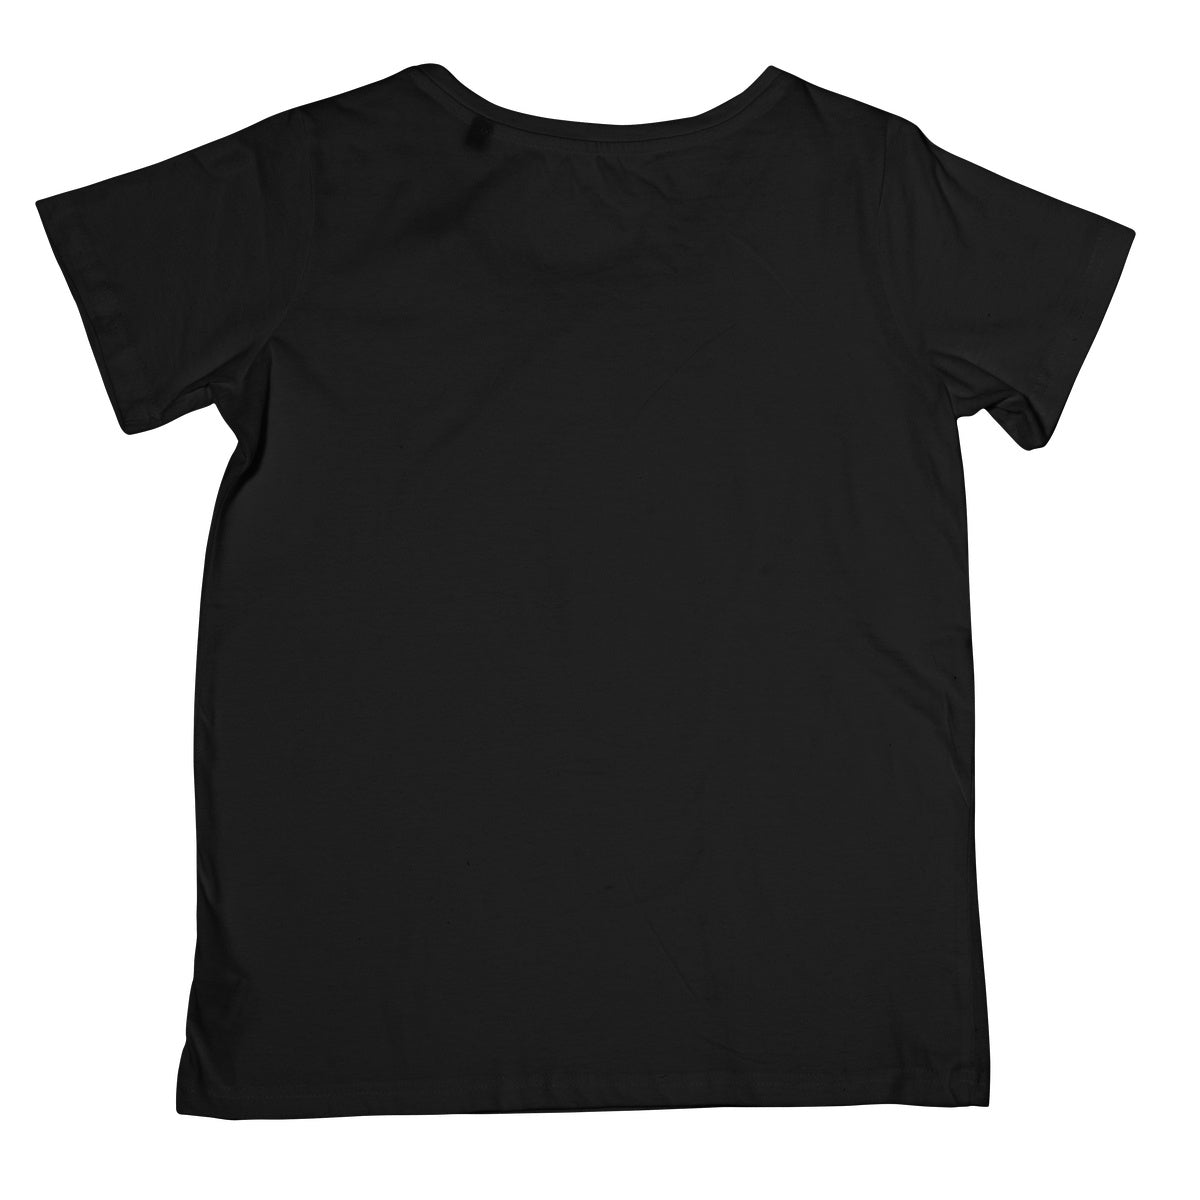 Event Day Women's Retail T-Shirt